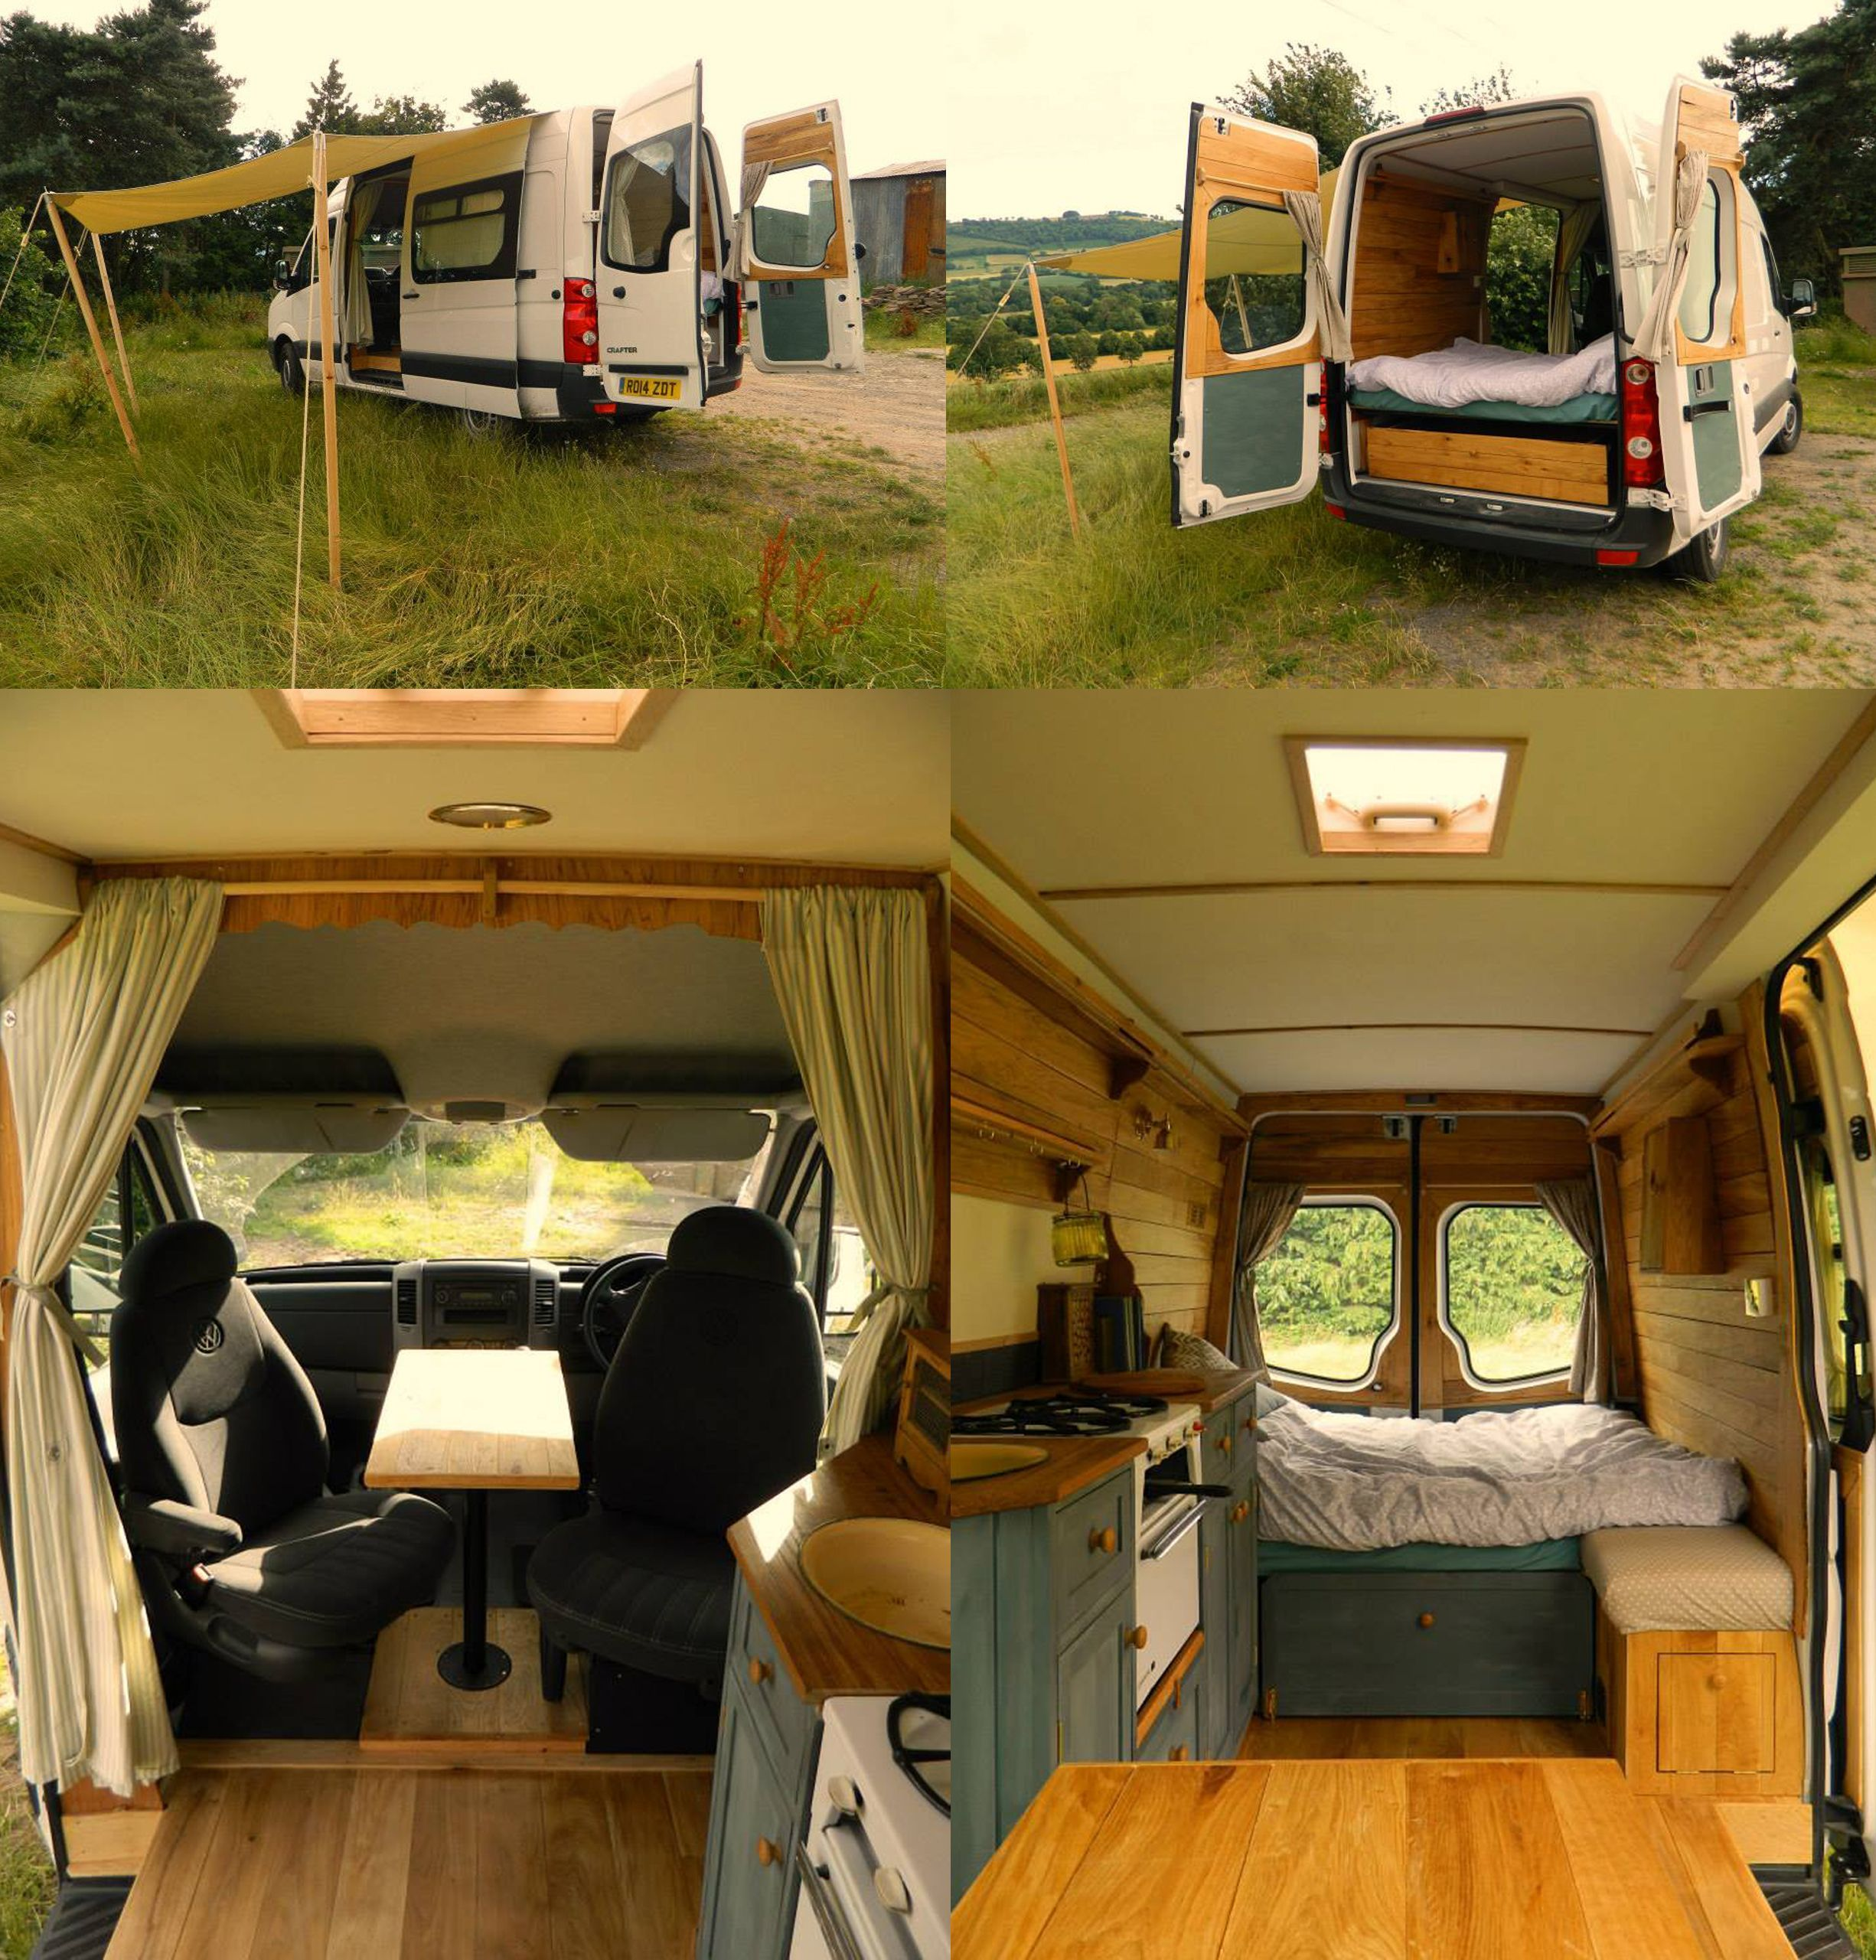 VW Crafter camper transformation by Rustic Campers. Great interior set up, spaci...,  VW Crafter ca